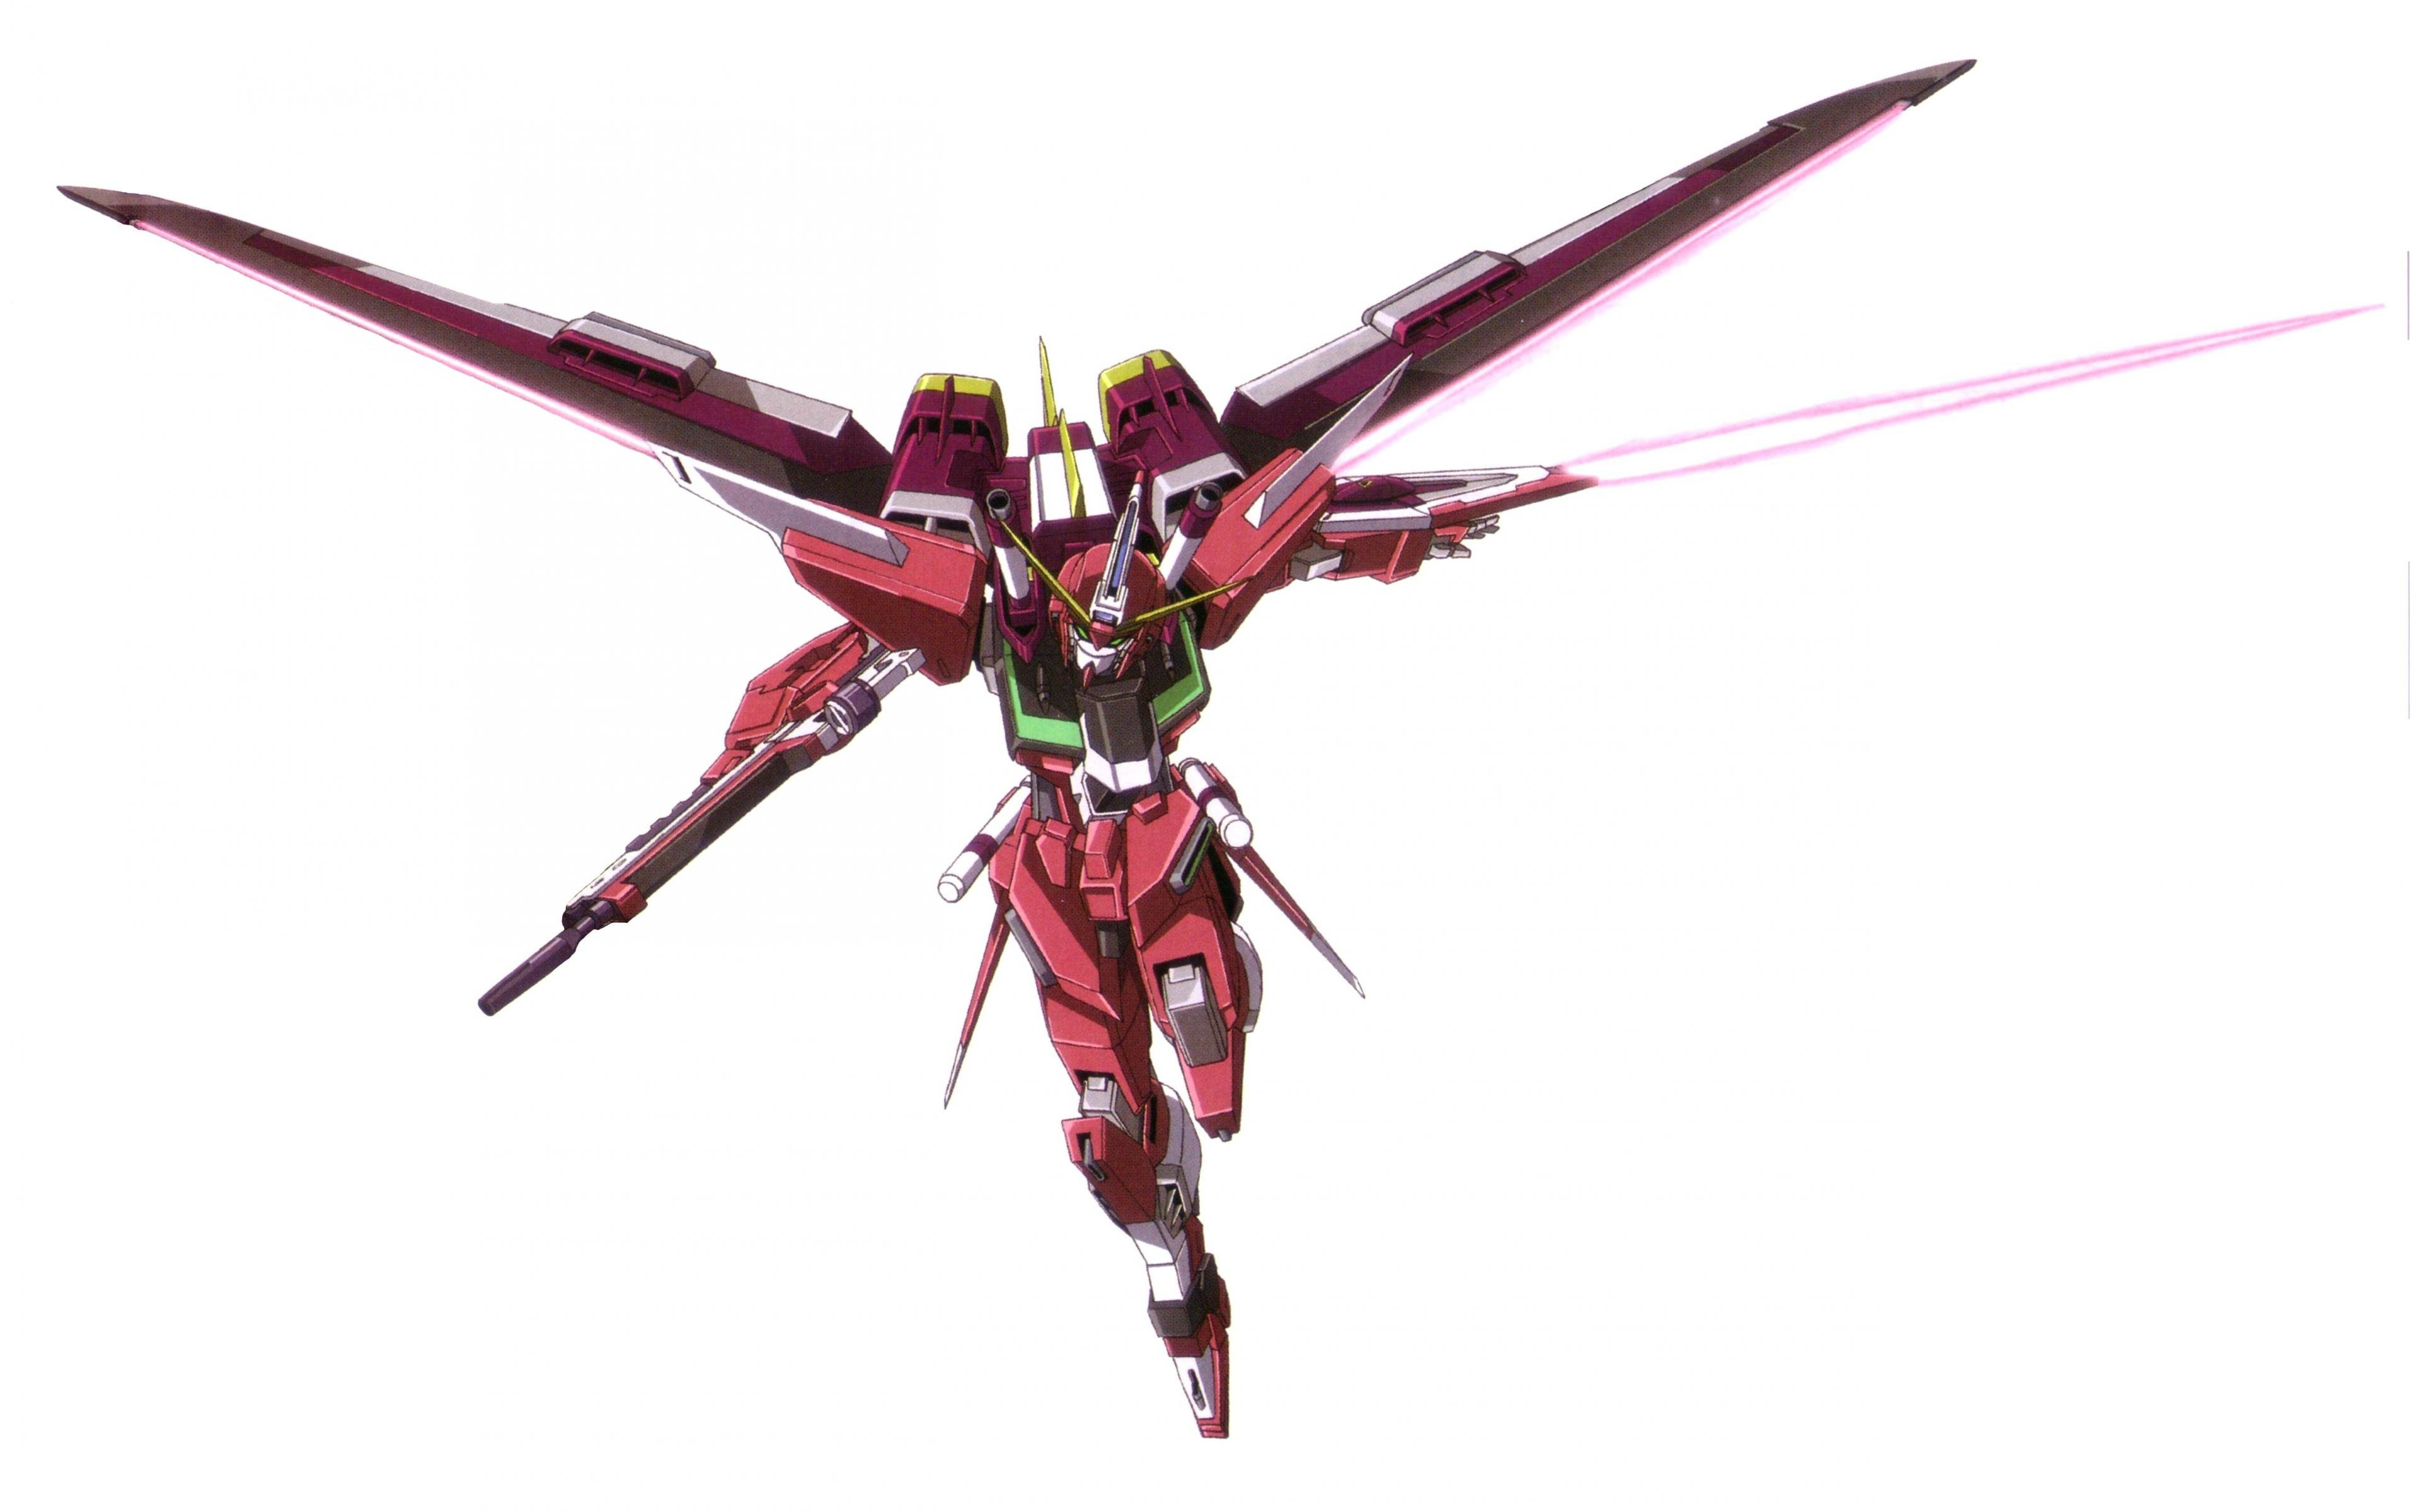 Download hd 3840x2400 Mobile Suit Gundam Seed Destiny desktop wallpaper ID:298371 for free